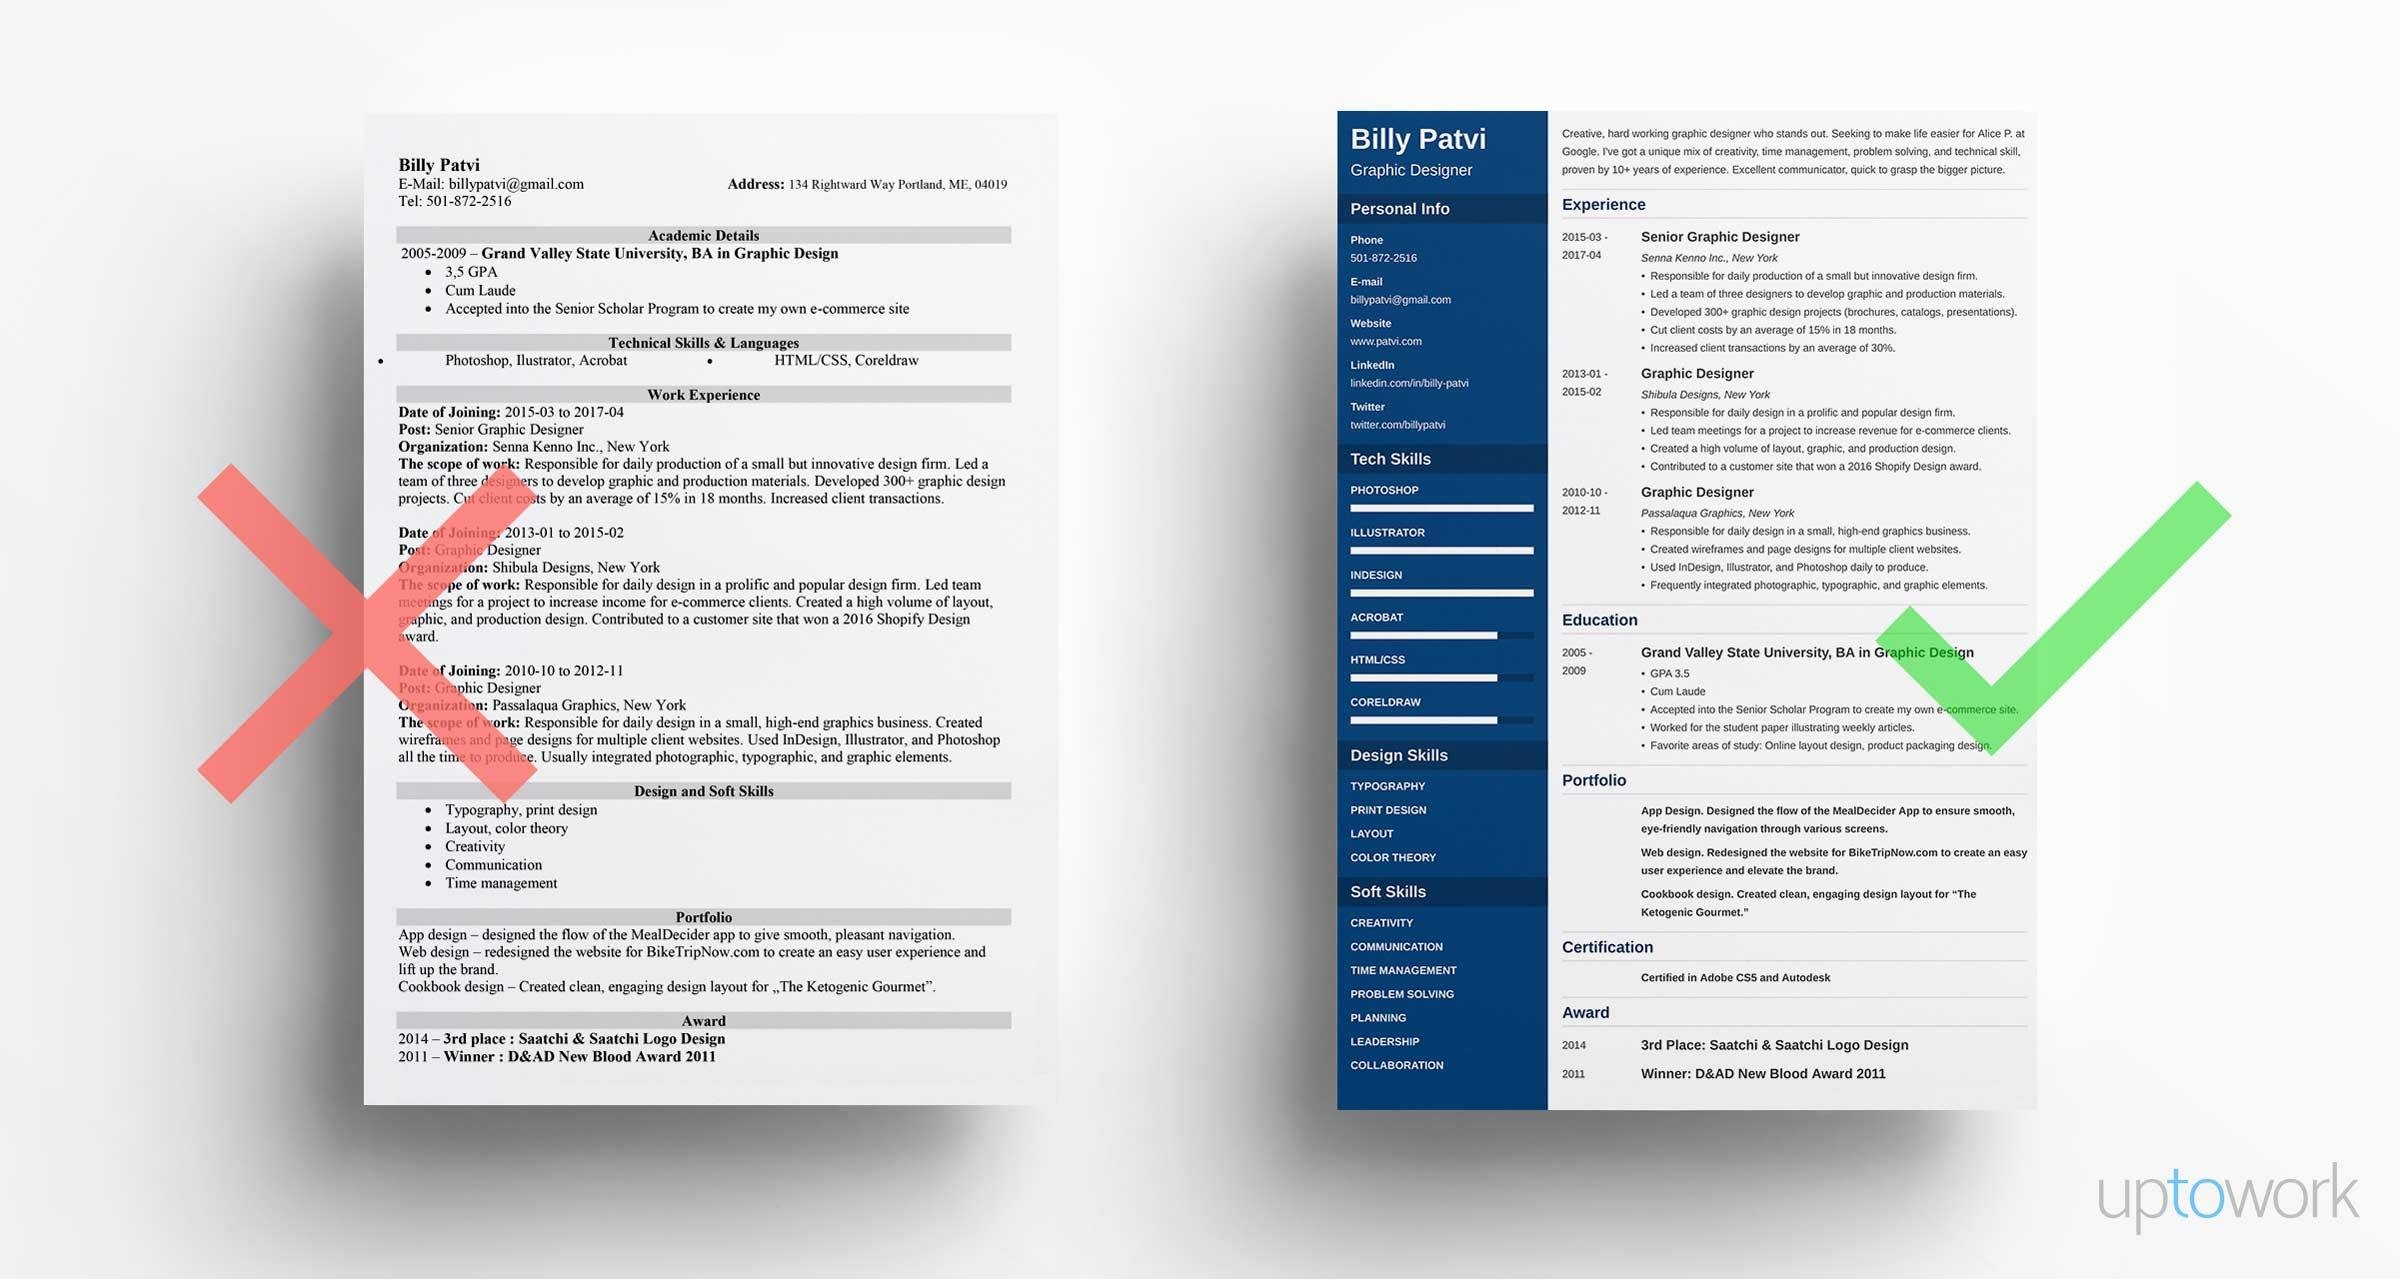 graphic designer resume examples and design tips for professional samples entry level Resume Professional Graphic Design Resume